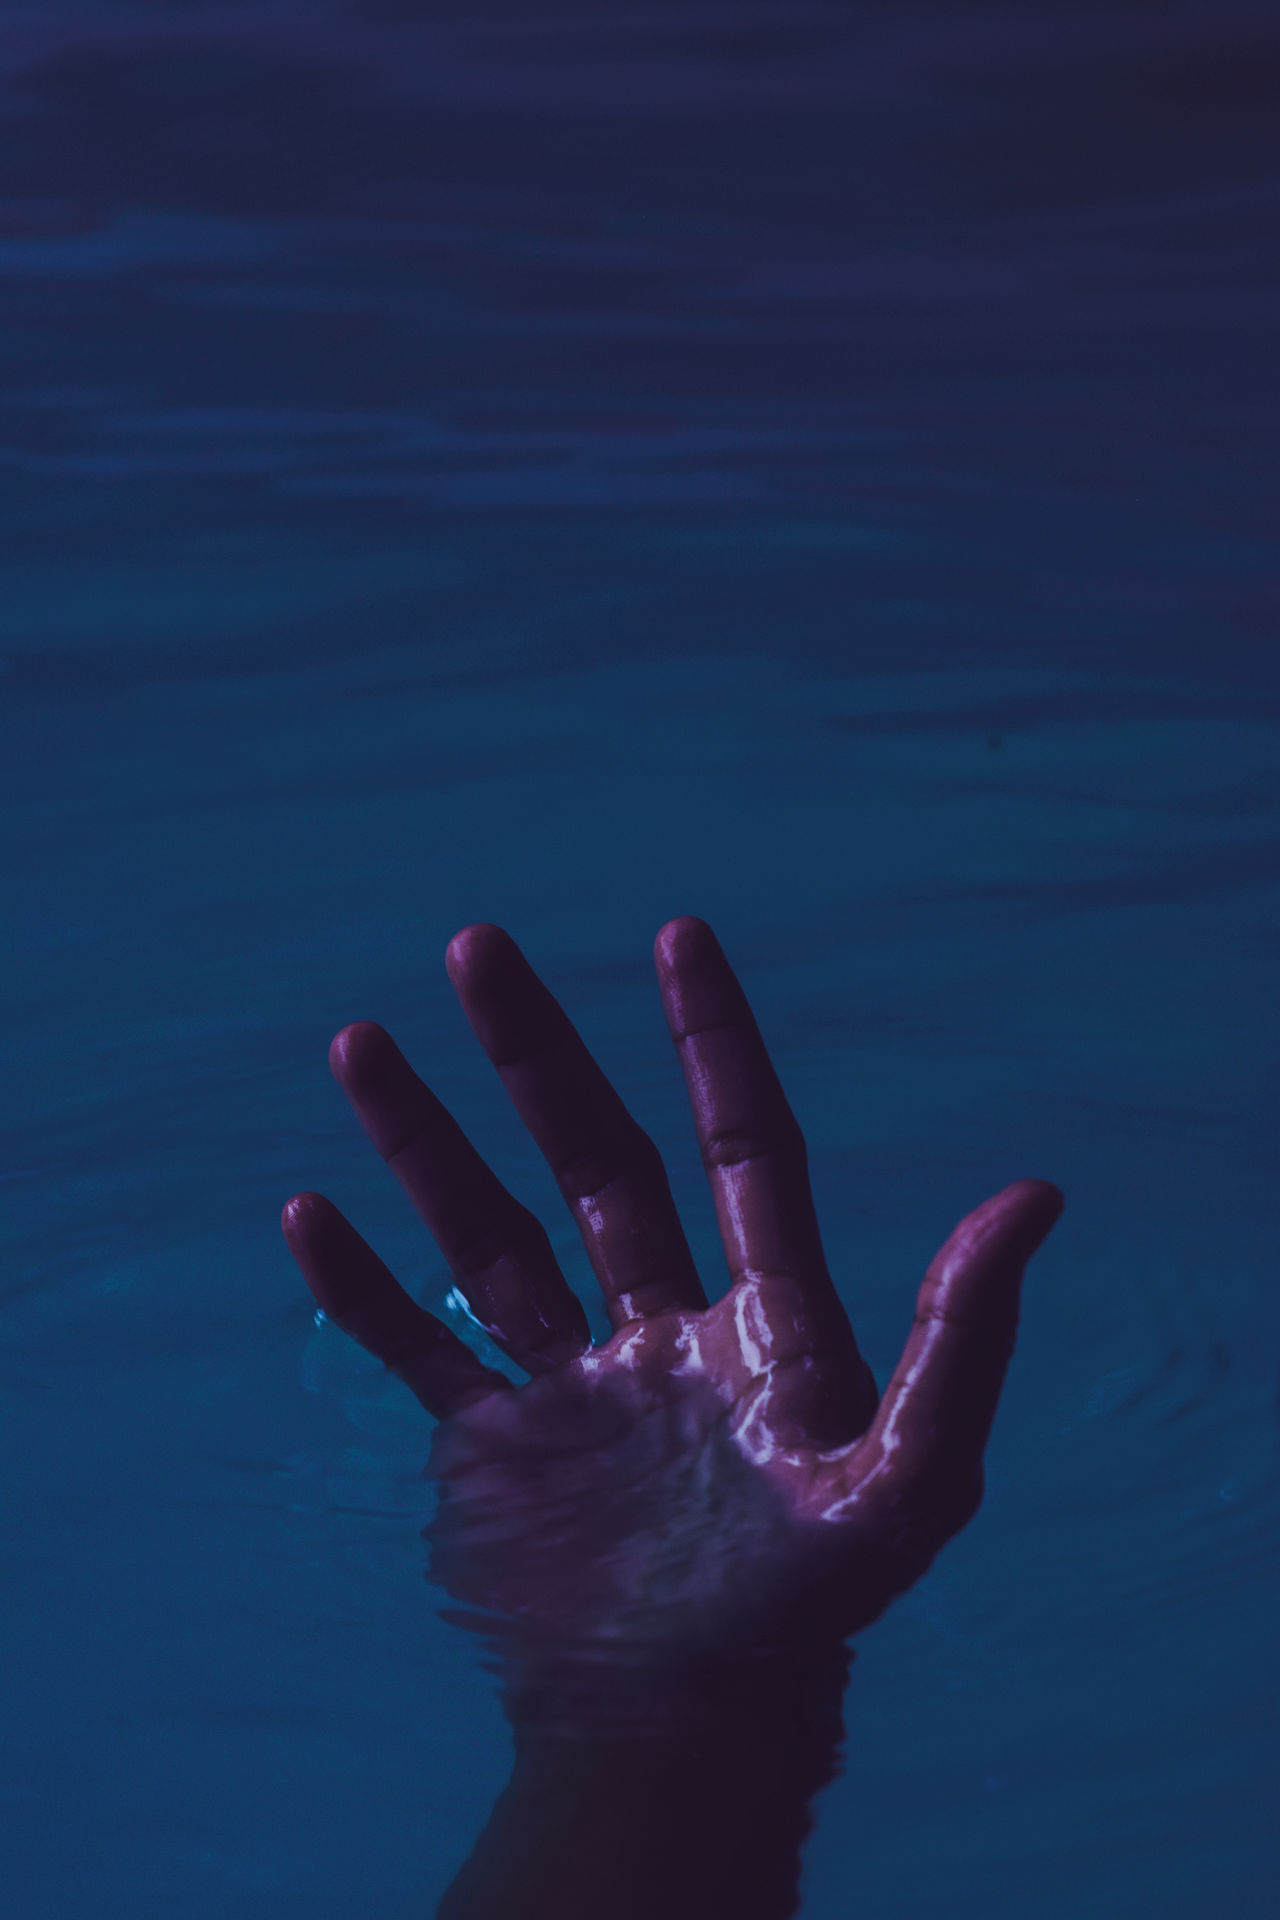 Cropped hand drowning in lake at night